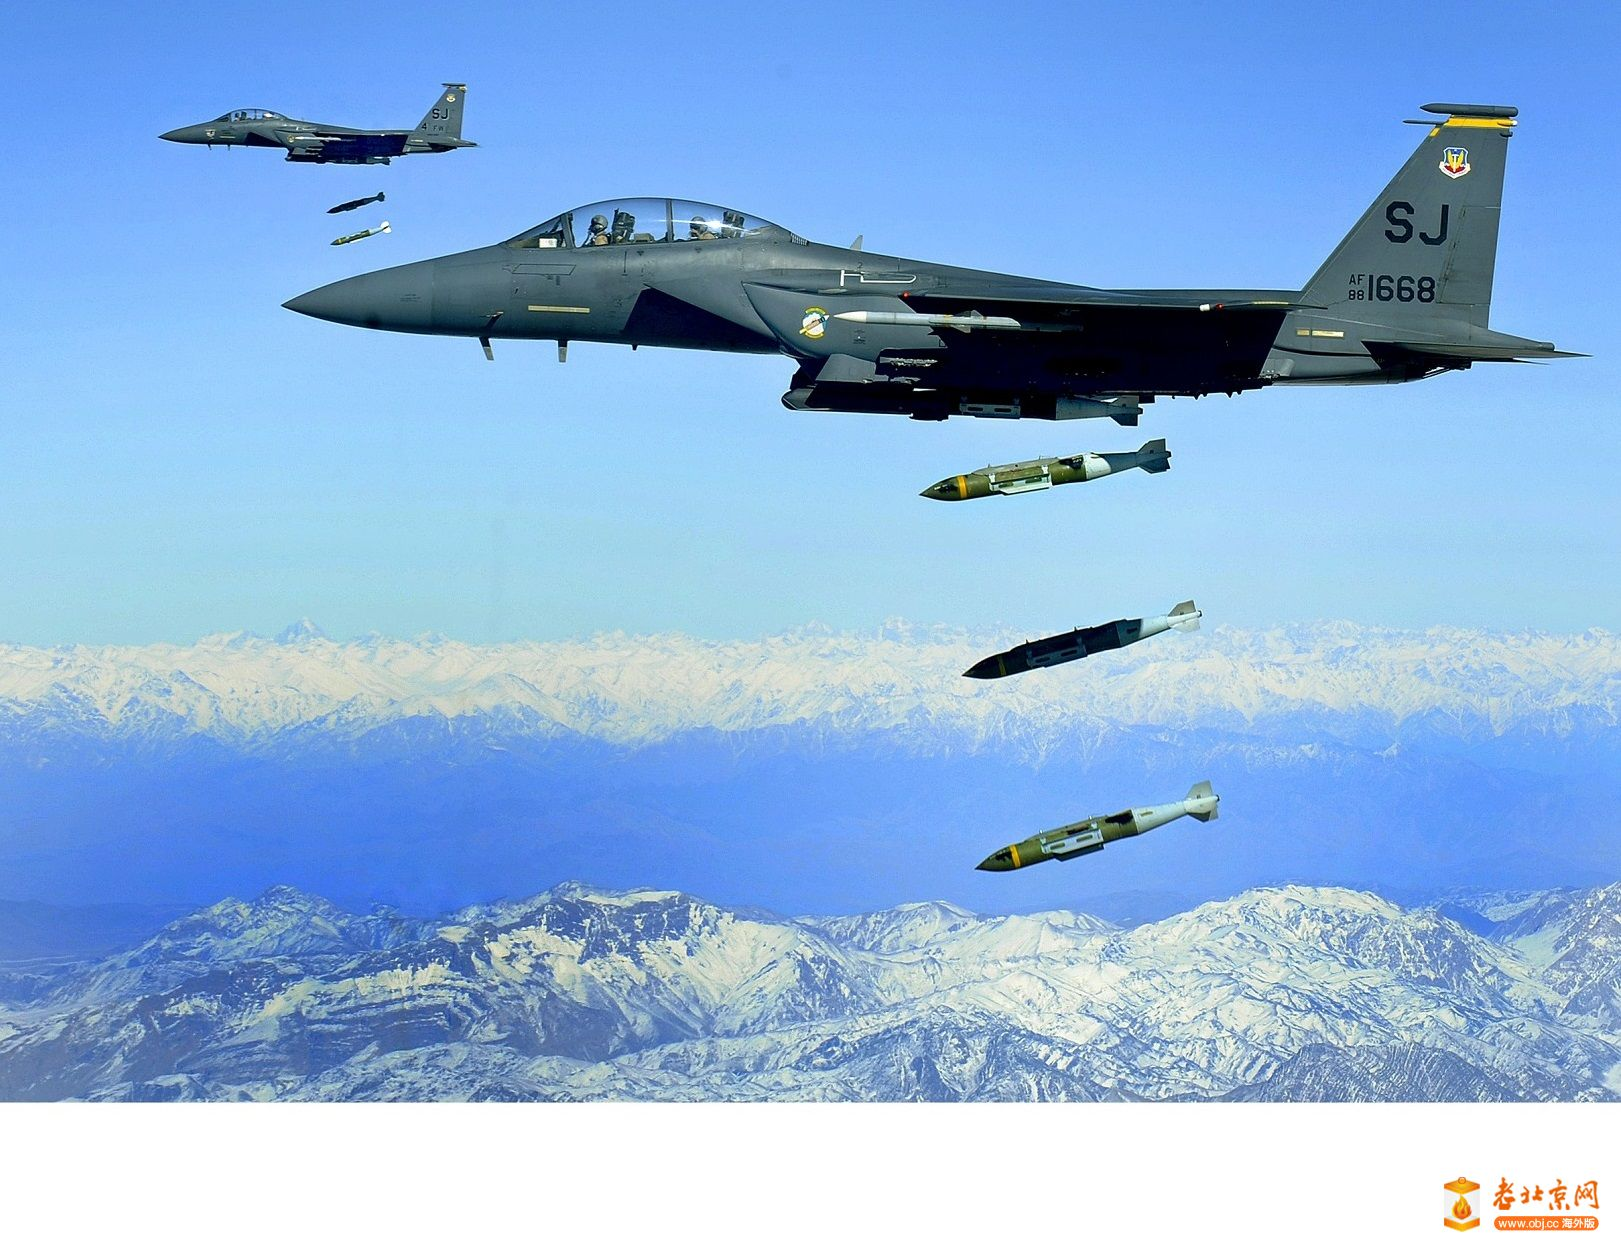 F-15E_drops_2,000-pound_munitions_Afghanistan_2009a.jpg